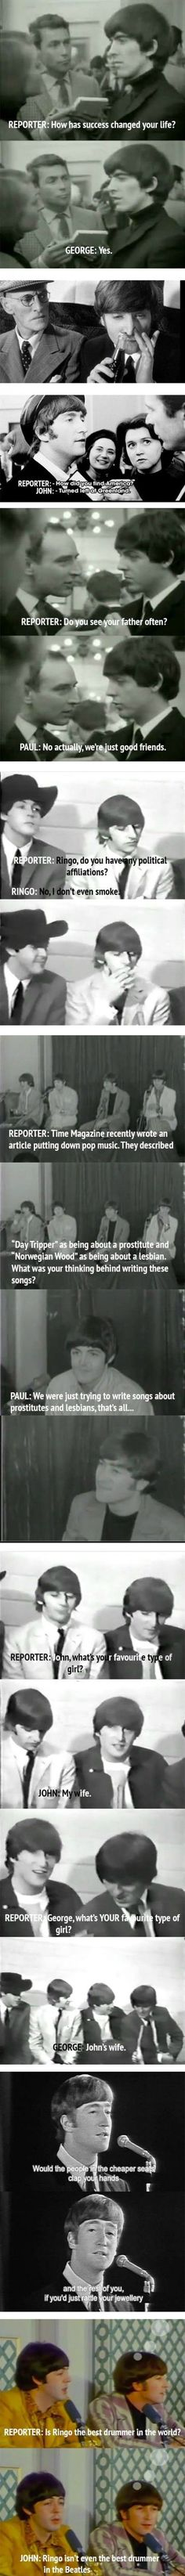 What happened when you tried to ask a serious question to The Beatles.